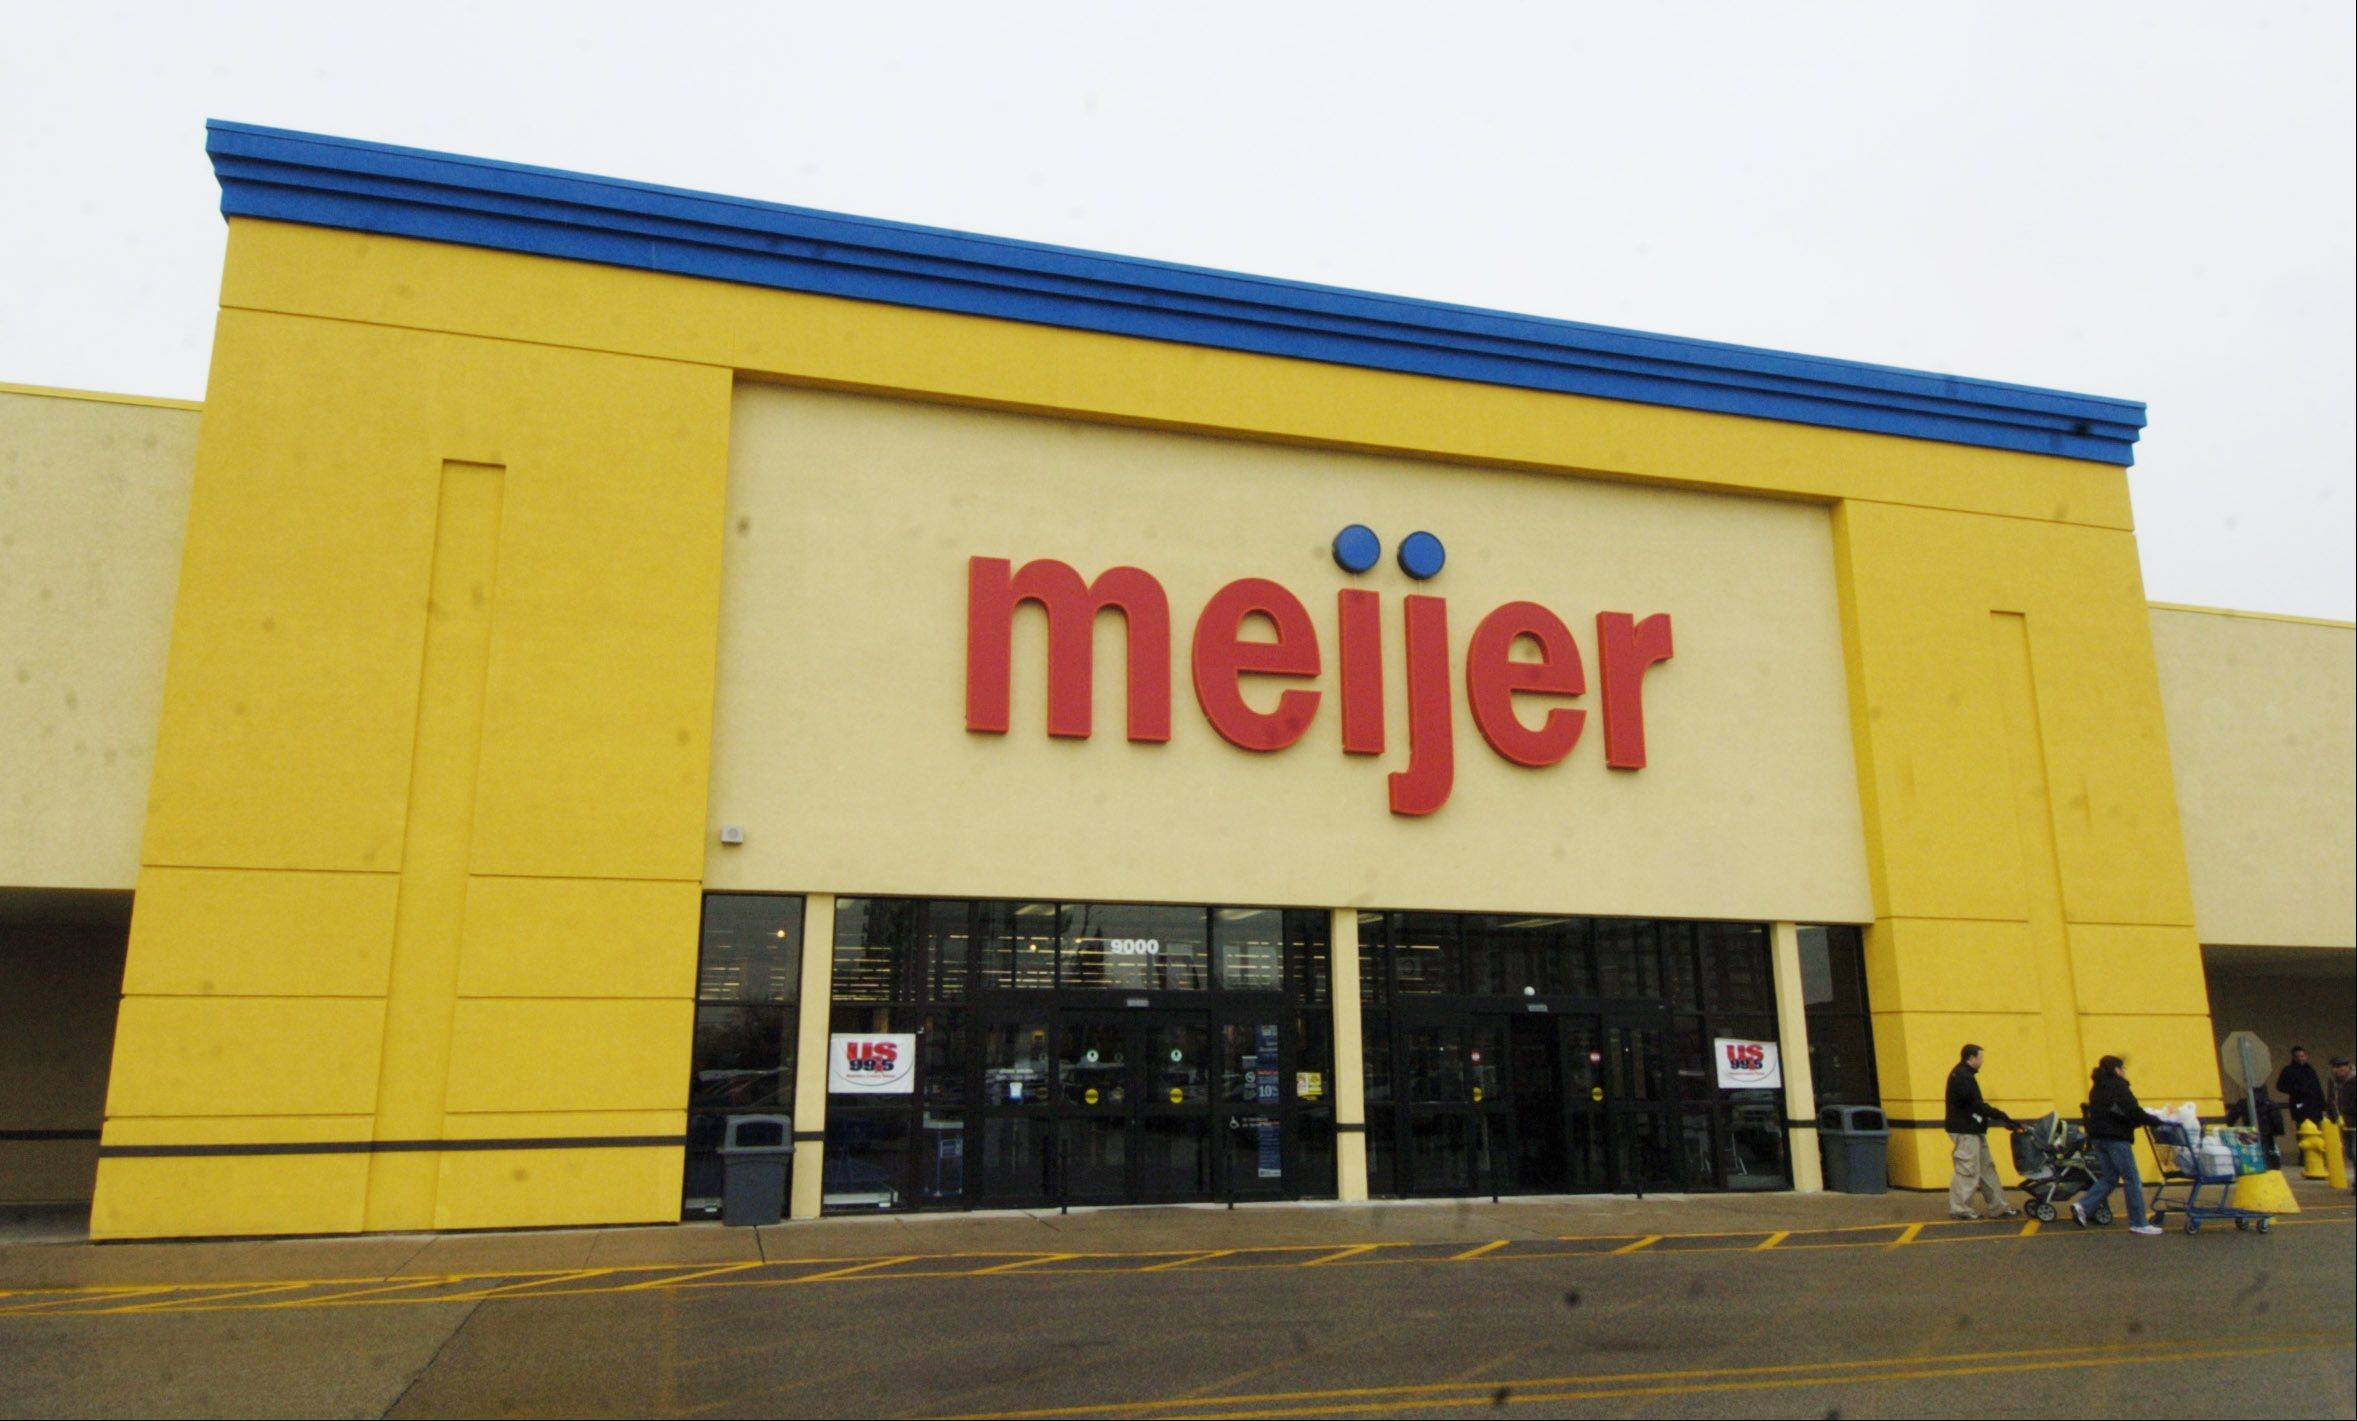 Meijer says it will hire 900 new workers in Illinois.